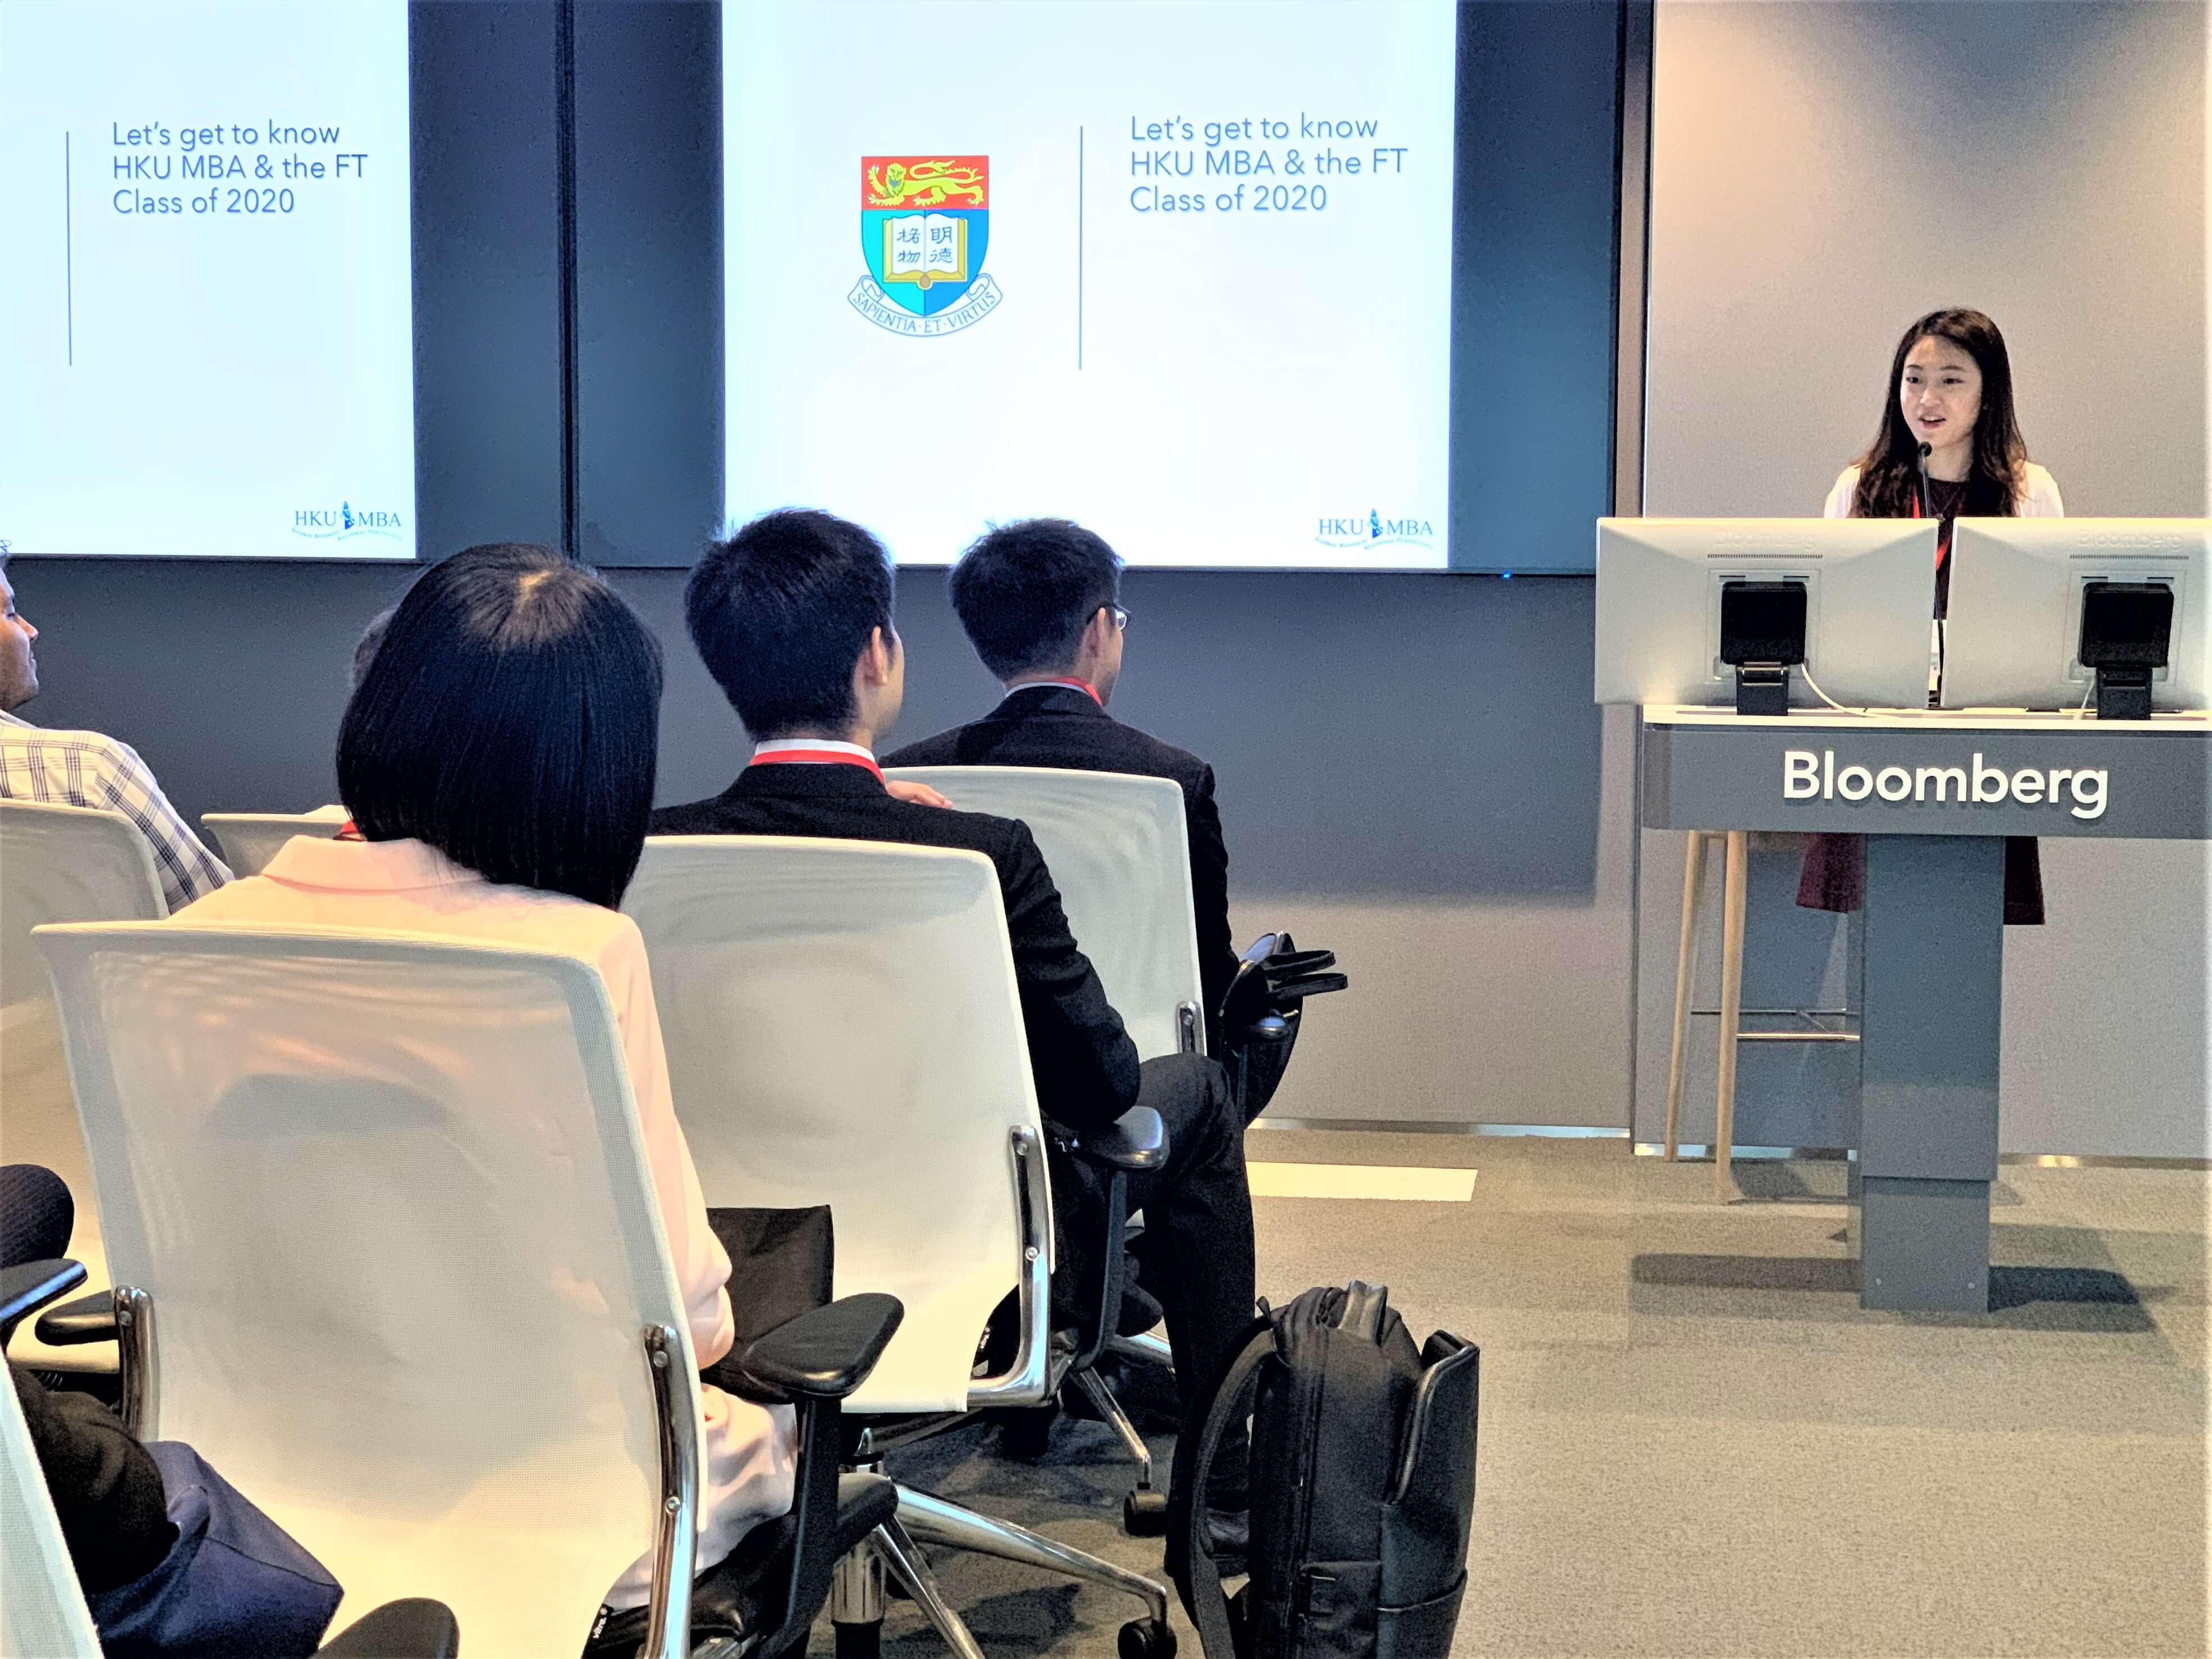 bloomberg hku mba 2020 induction